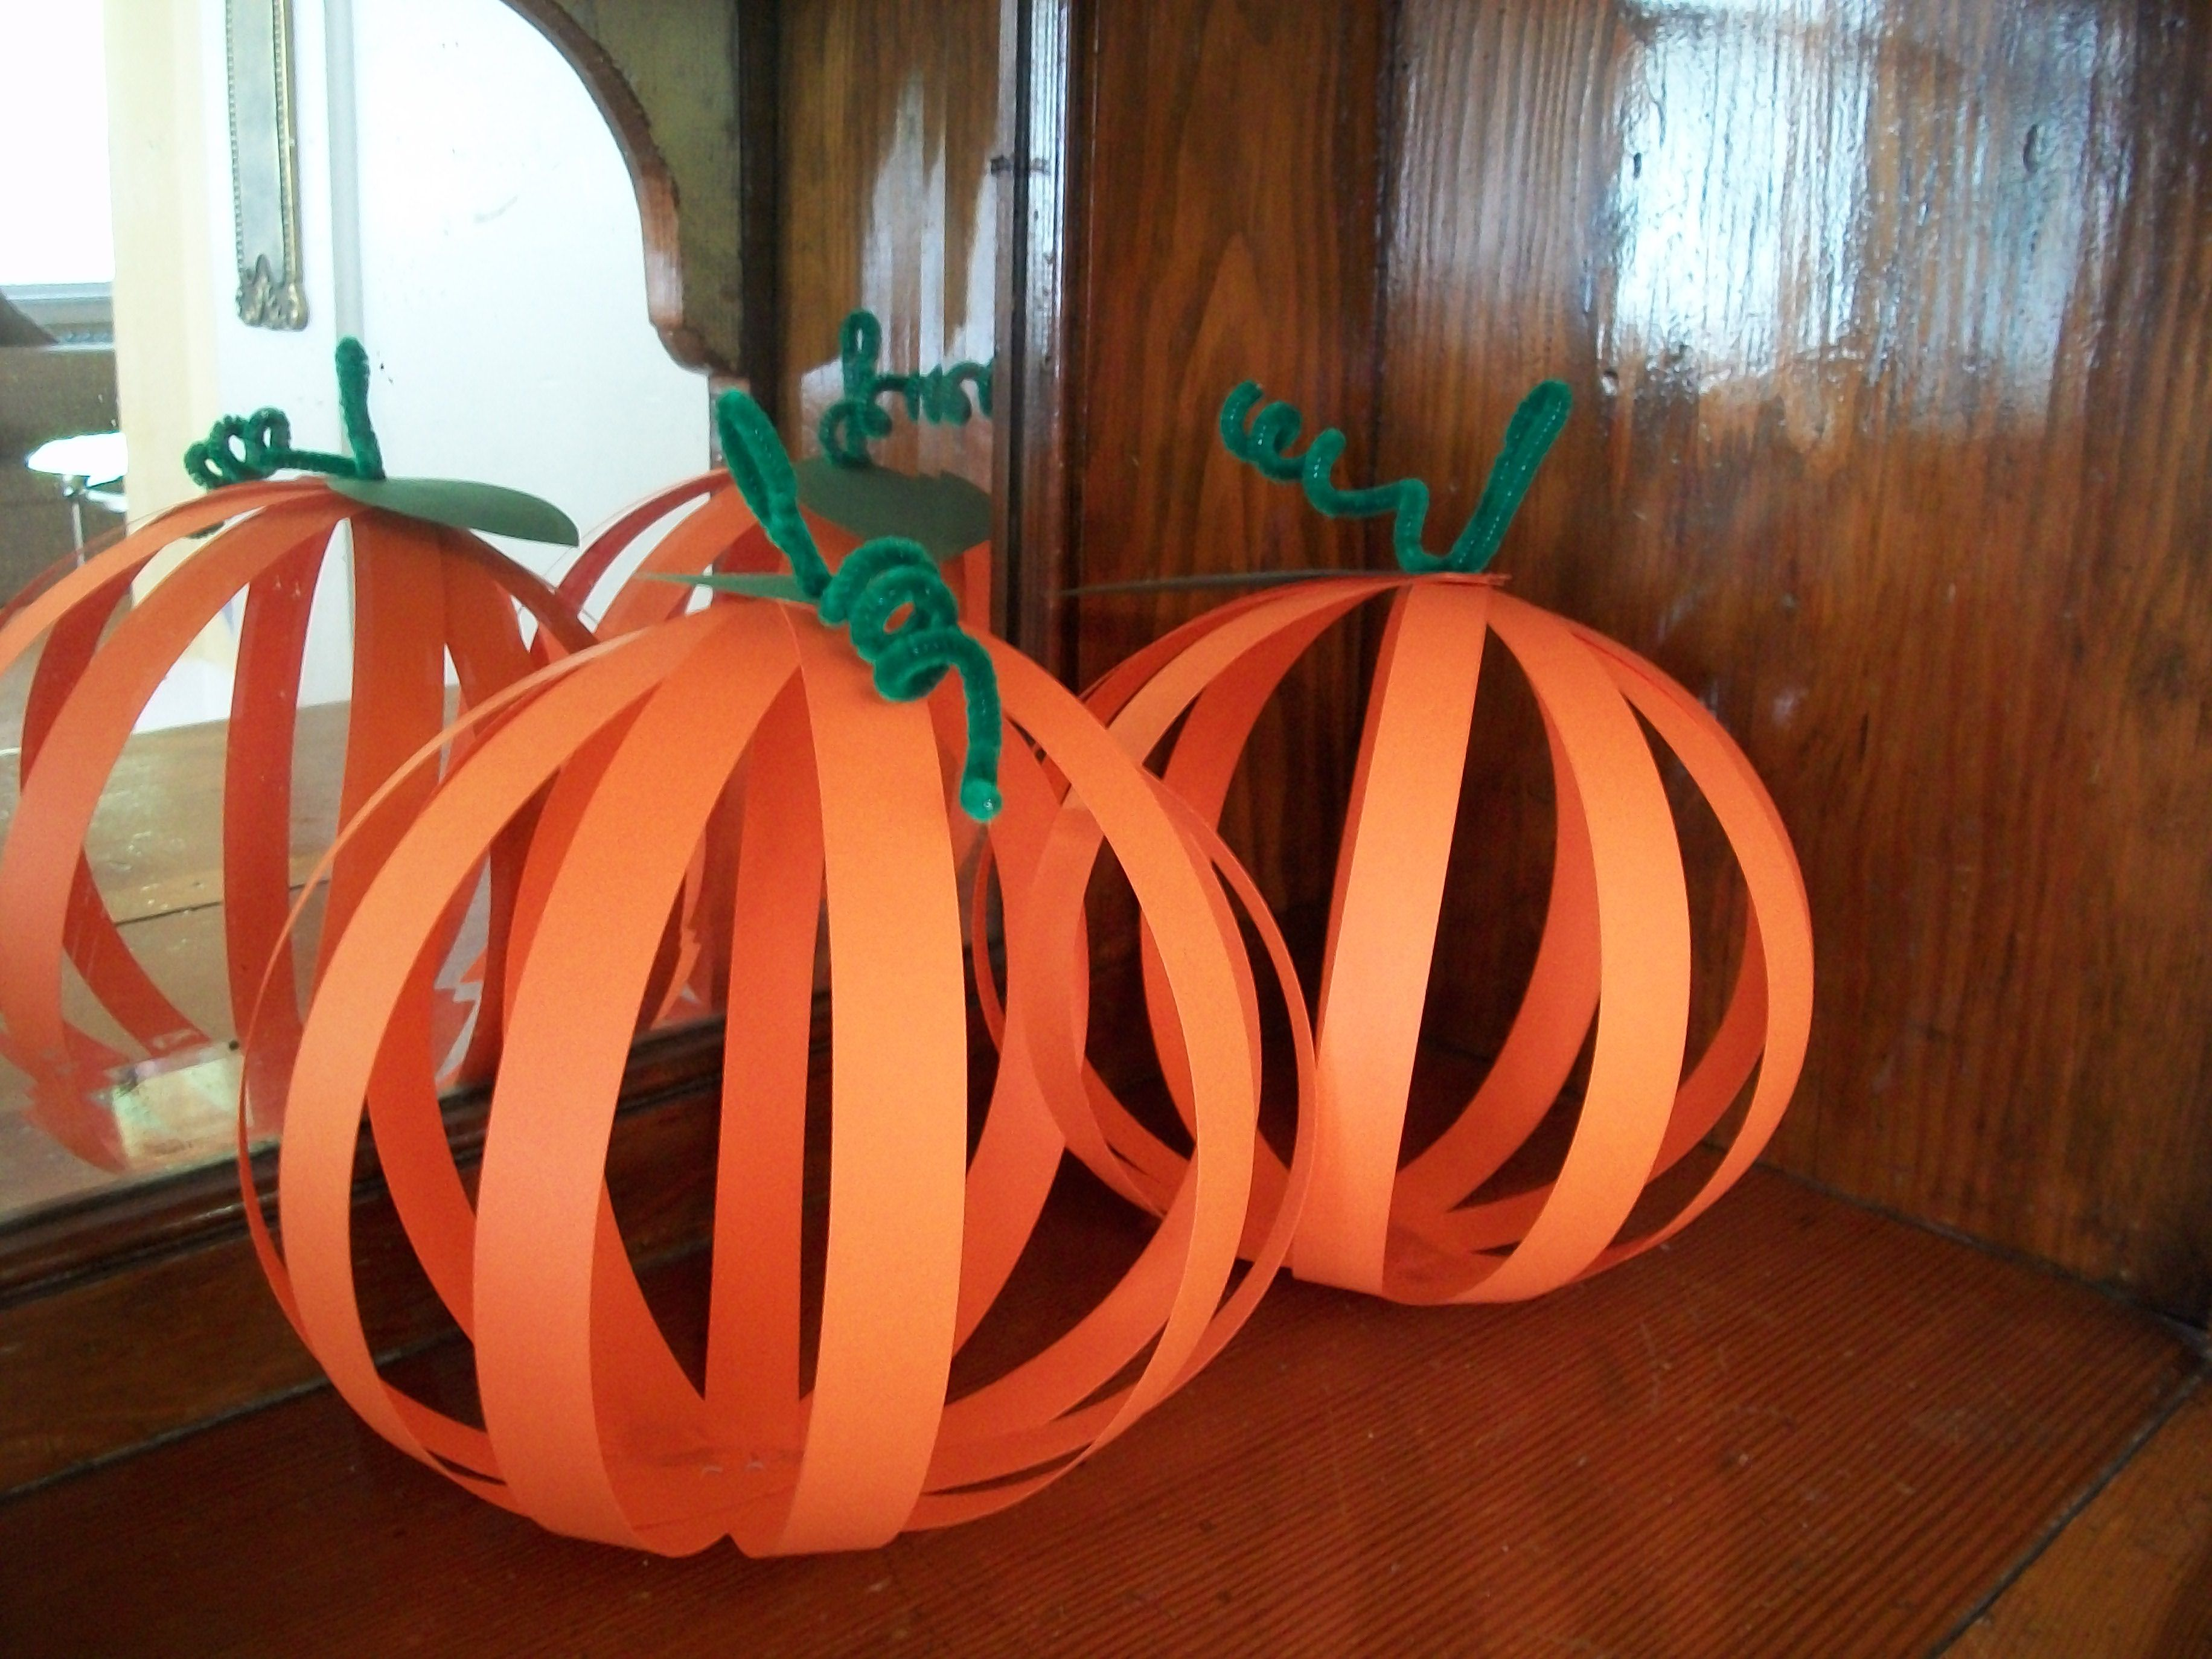 Construction Paper Craft Ideas For Kids Part - 31: Simple Paper Pumpkin Craft For Kids Construction Paper And Pipe Cleaners  Areu2026